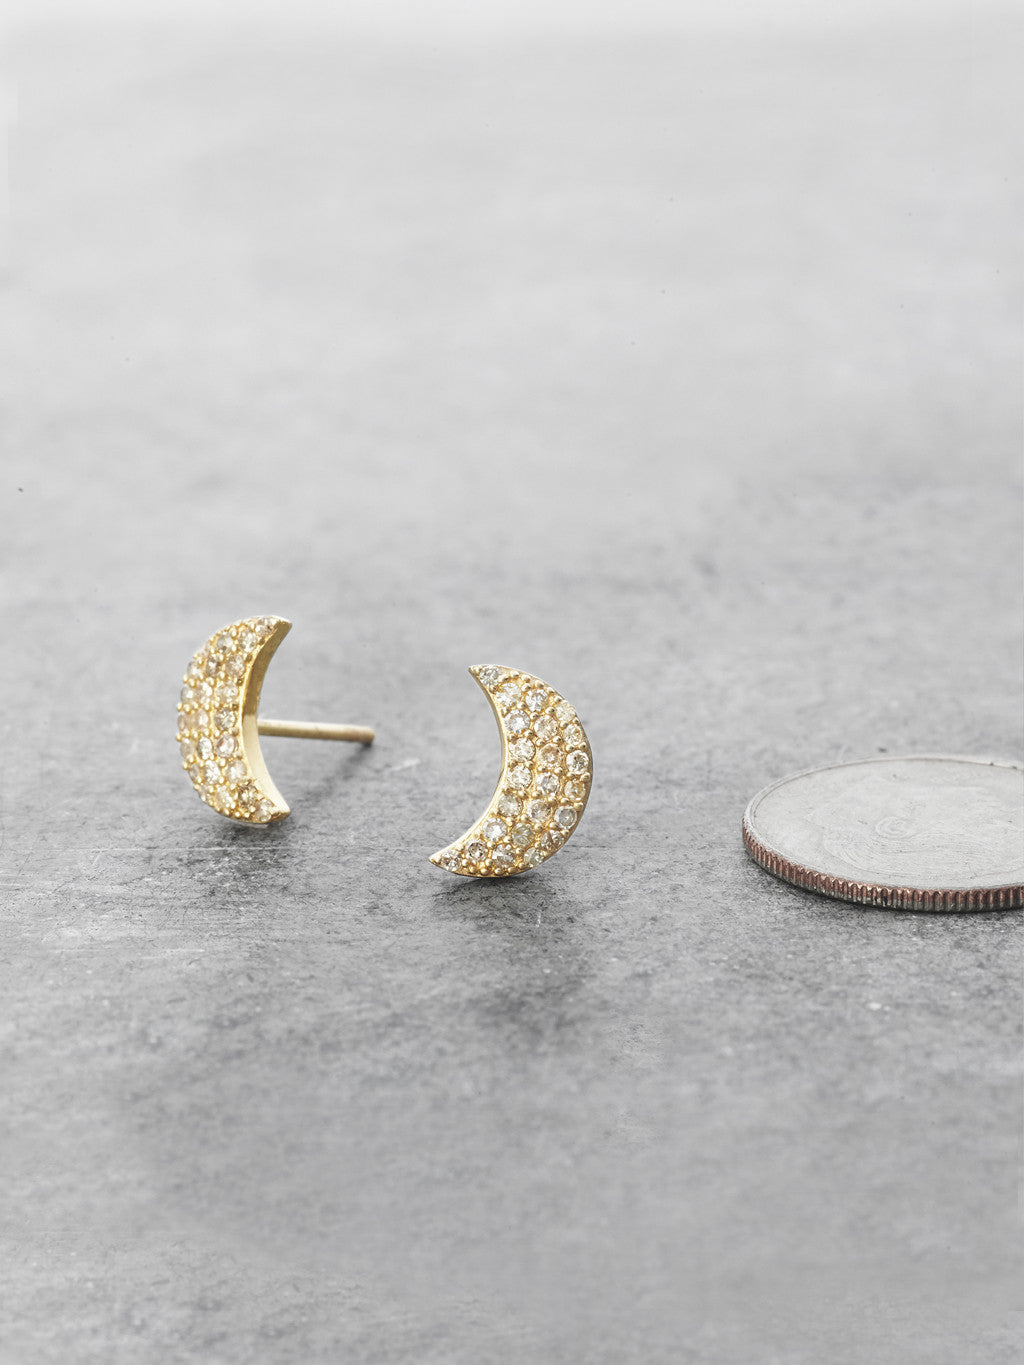 14K Pave Diamond Crescent Moon Posts to scale